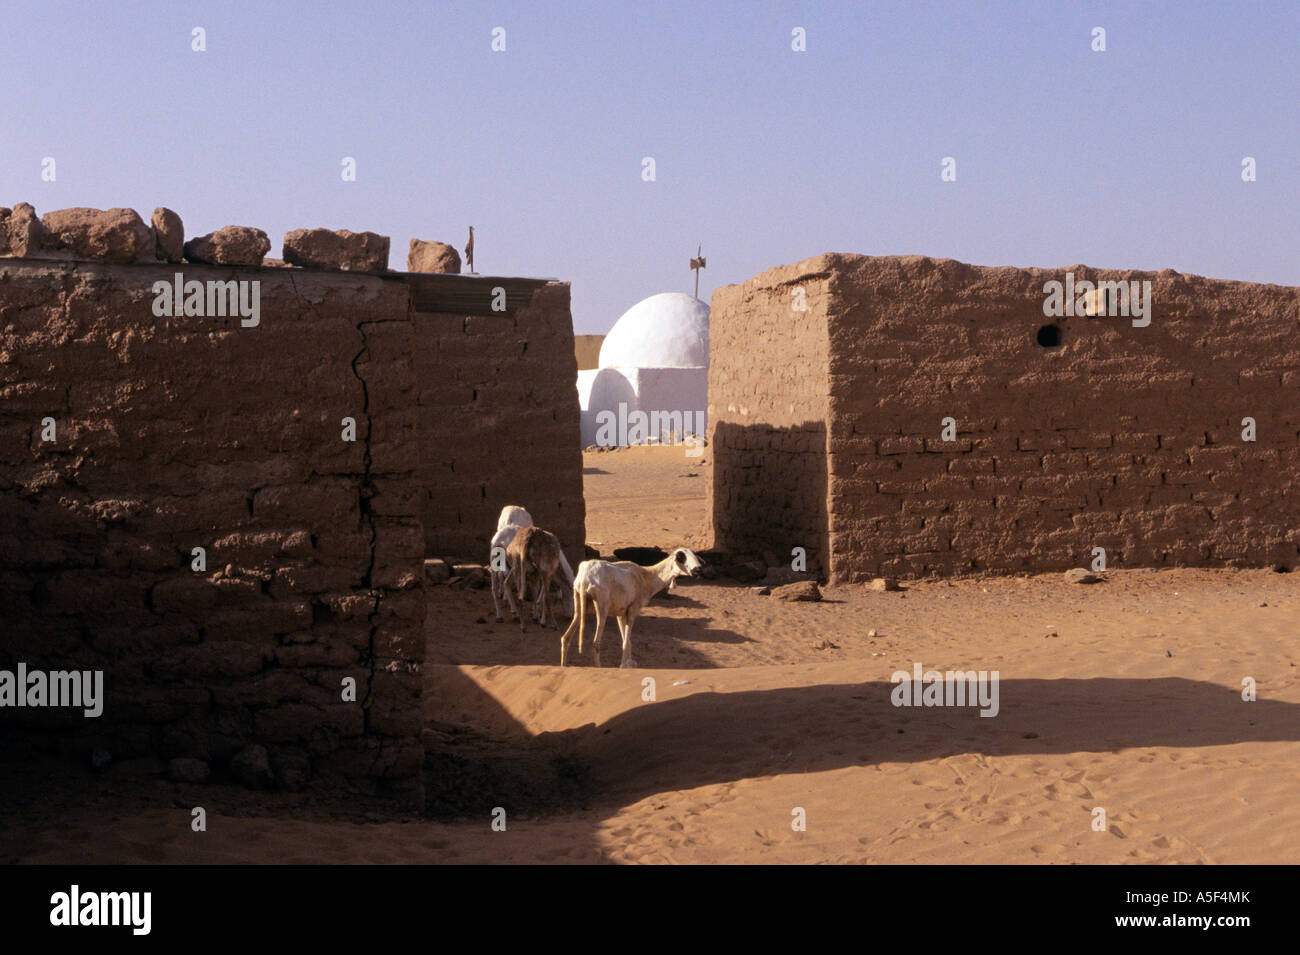 Goats in the Saharawi refugee camp in Tindouf Western Algeria - Stock Image